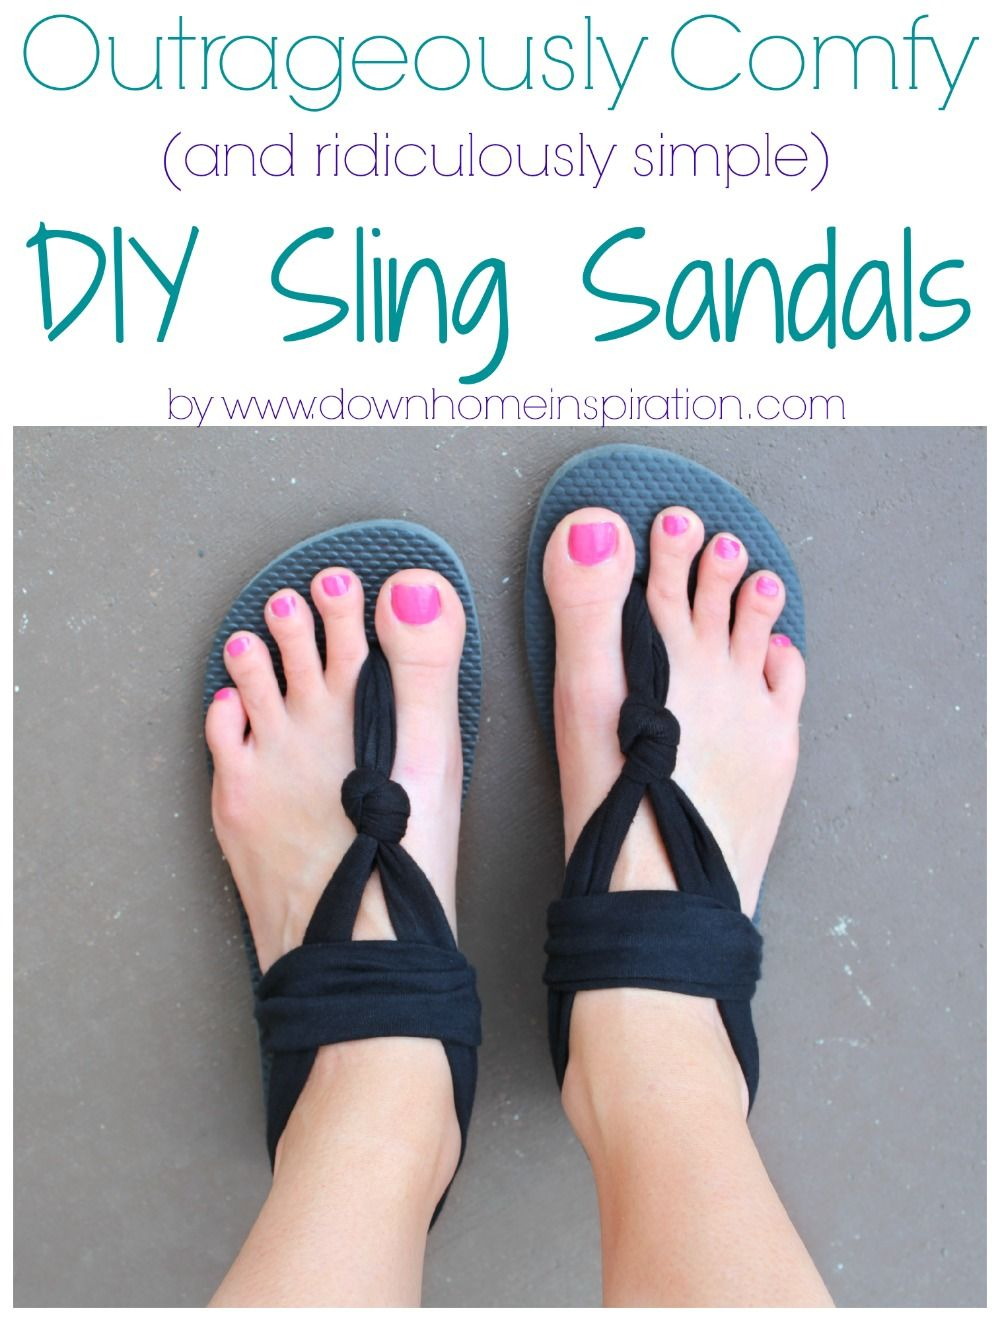 31c1cf954 Outrageously Comfy (and ridiculously simple) DIY Sling Sandals ...